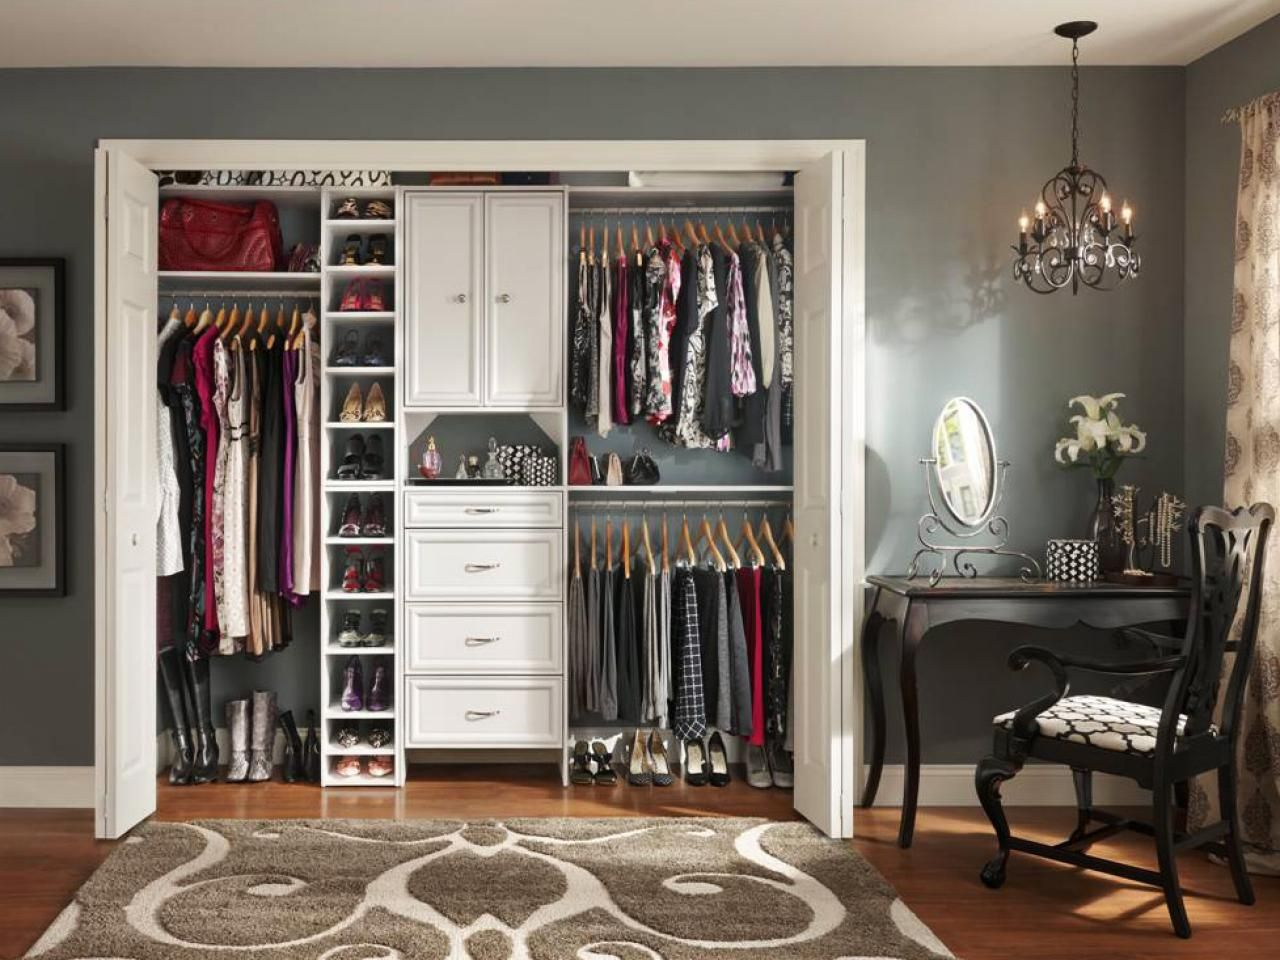 Small Closet Organization Ideas Pictures Options Tips Closet Remodel Closet Bedroom Ikea Closet Organizer